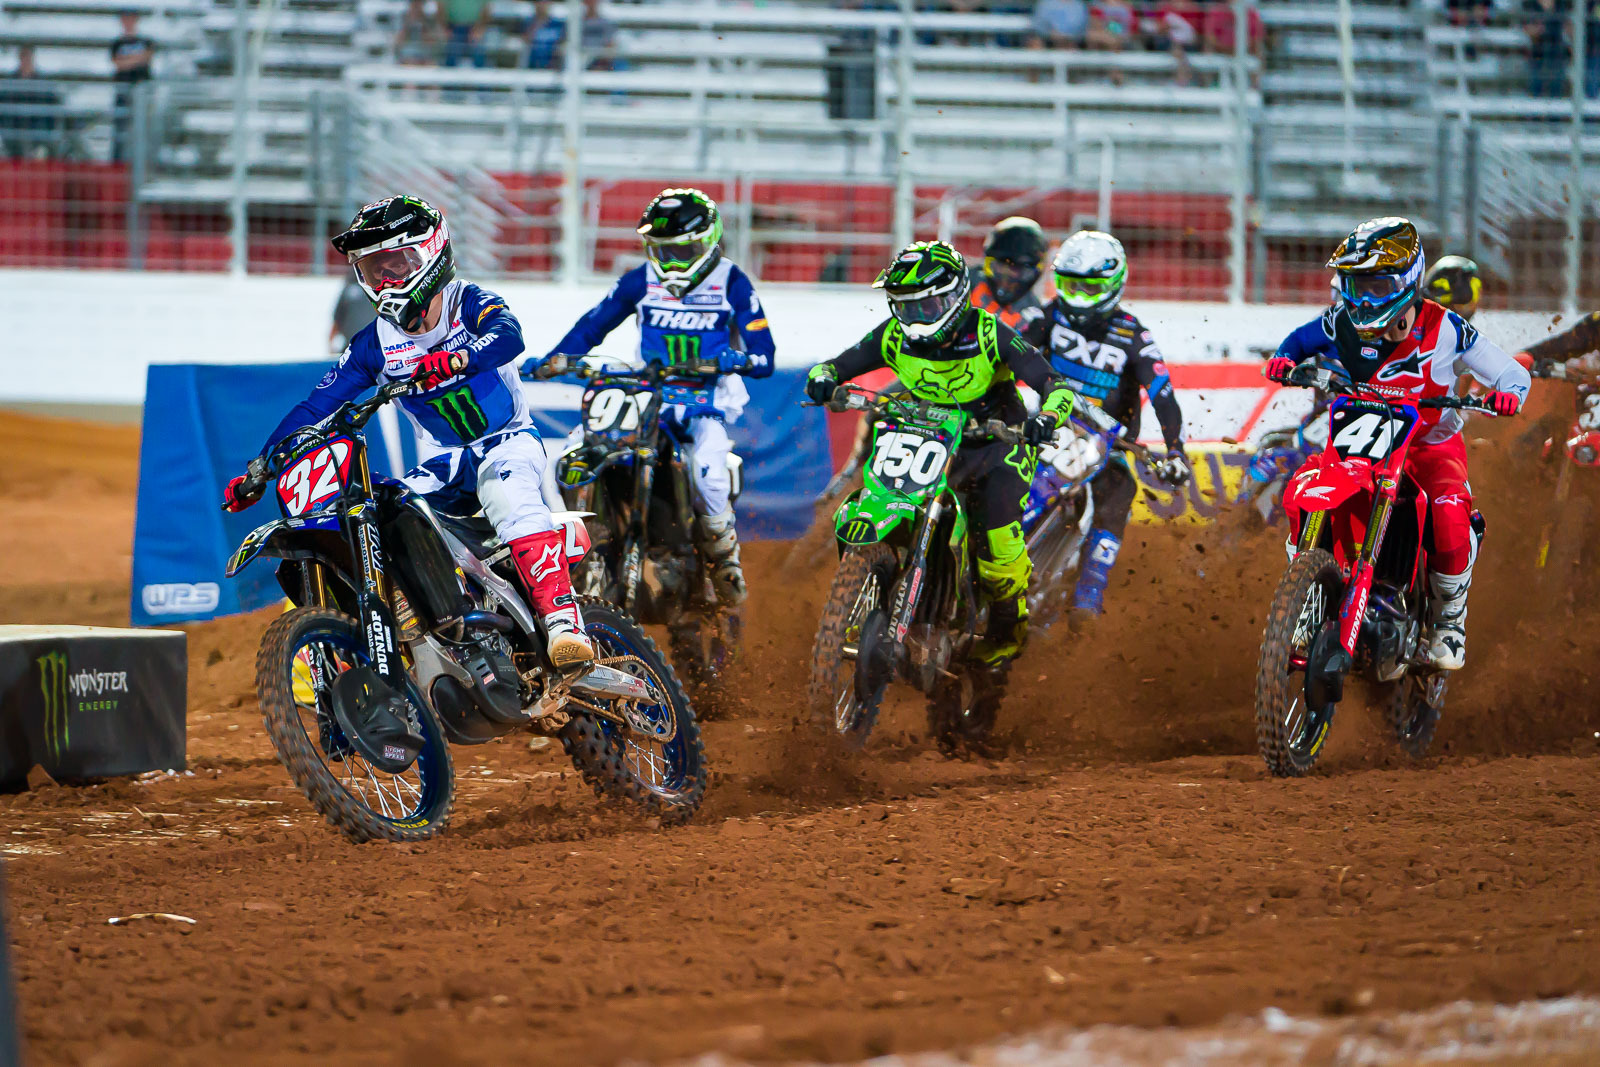 2021-ATLANTA-THREE-SUPERCROSS_KICKSTART_0980